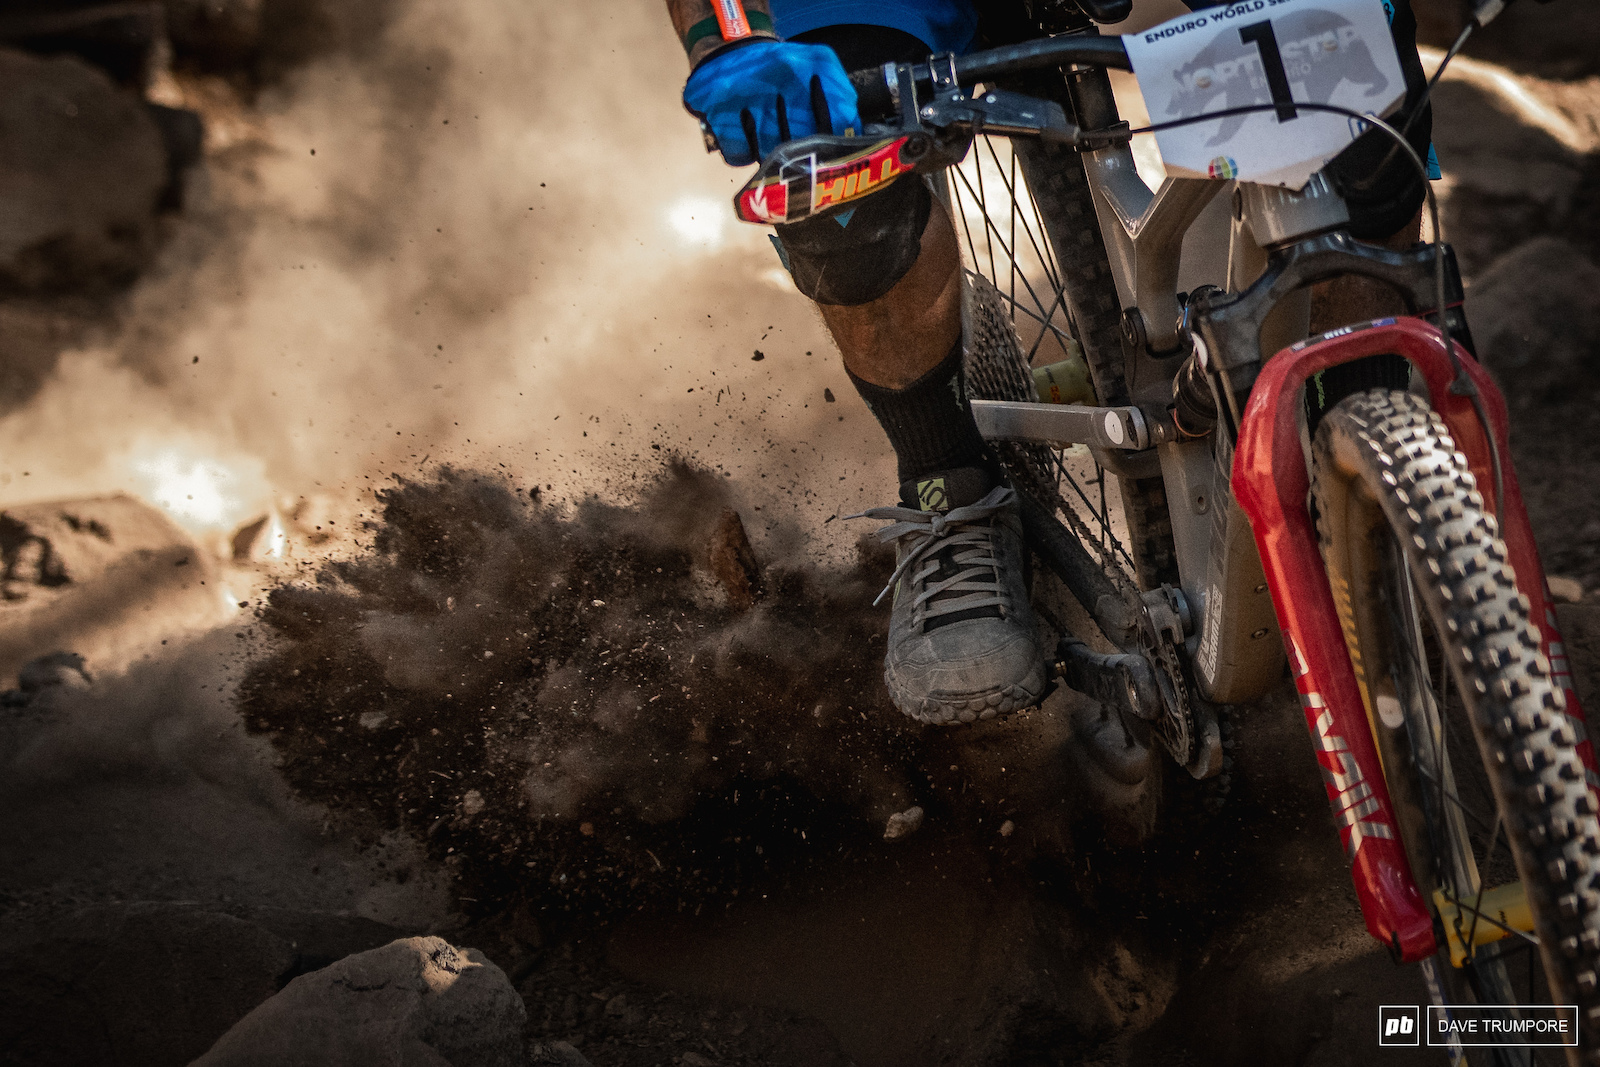 Flat pedal destruction and the reason Sam Hill has the number one plate on the front of his bike.